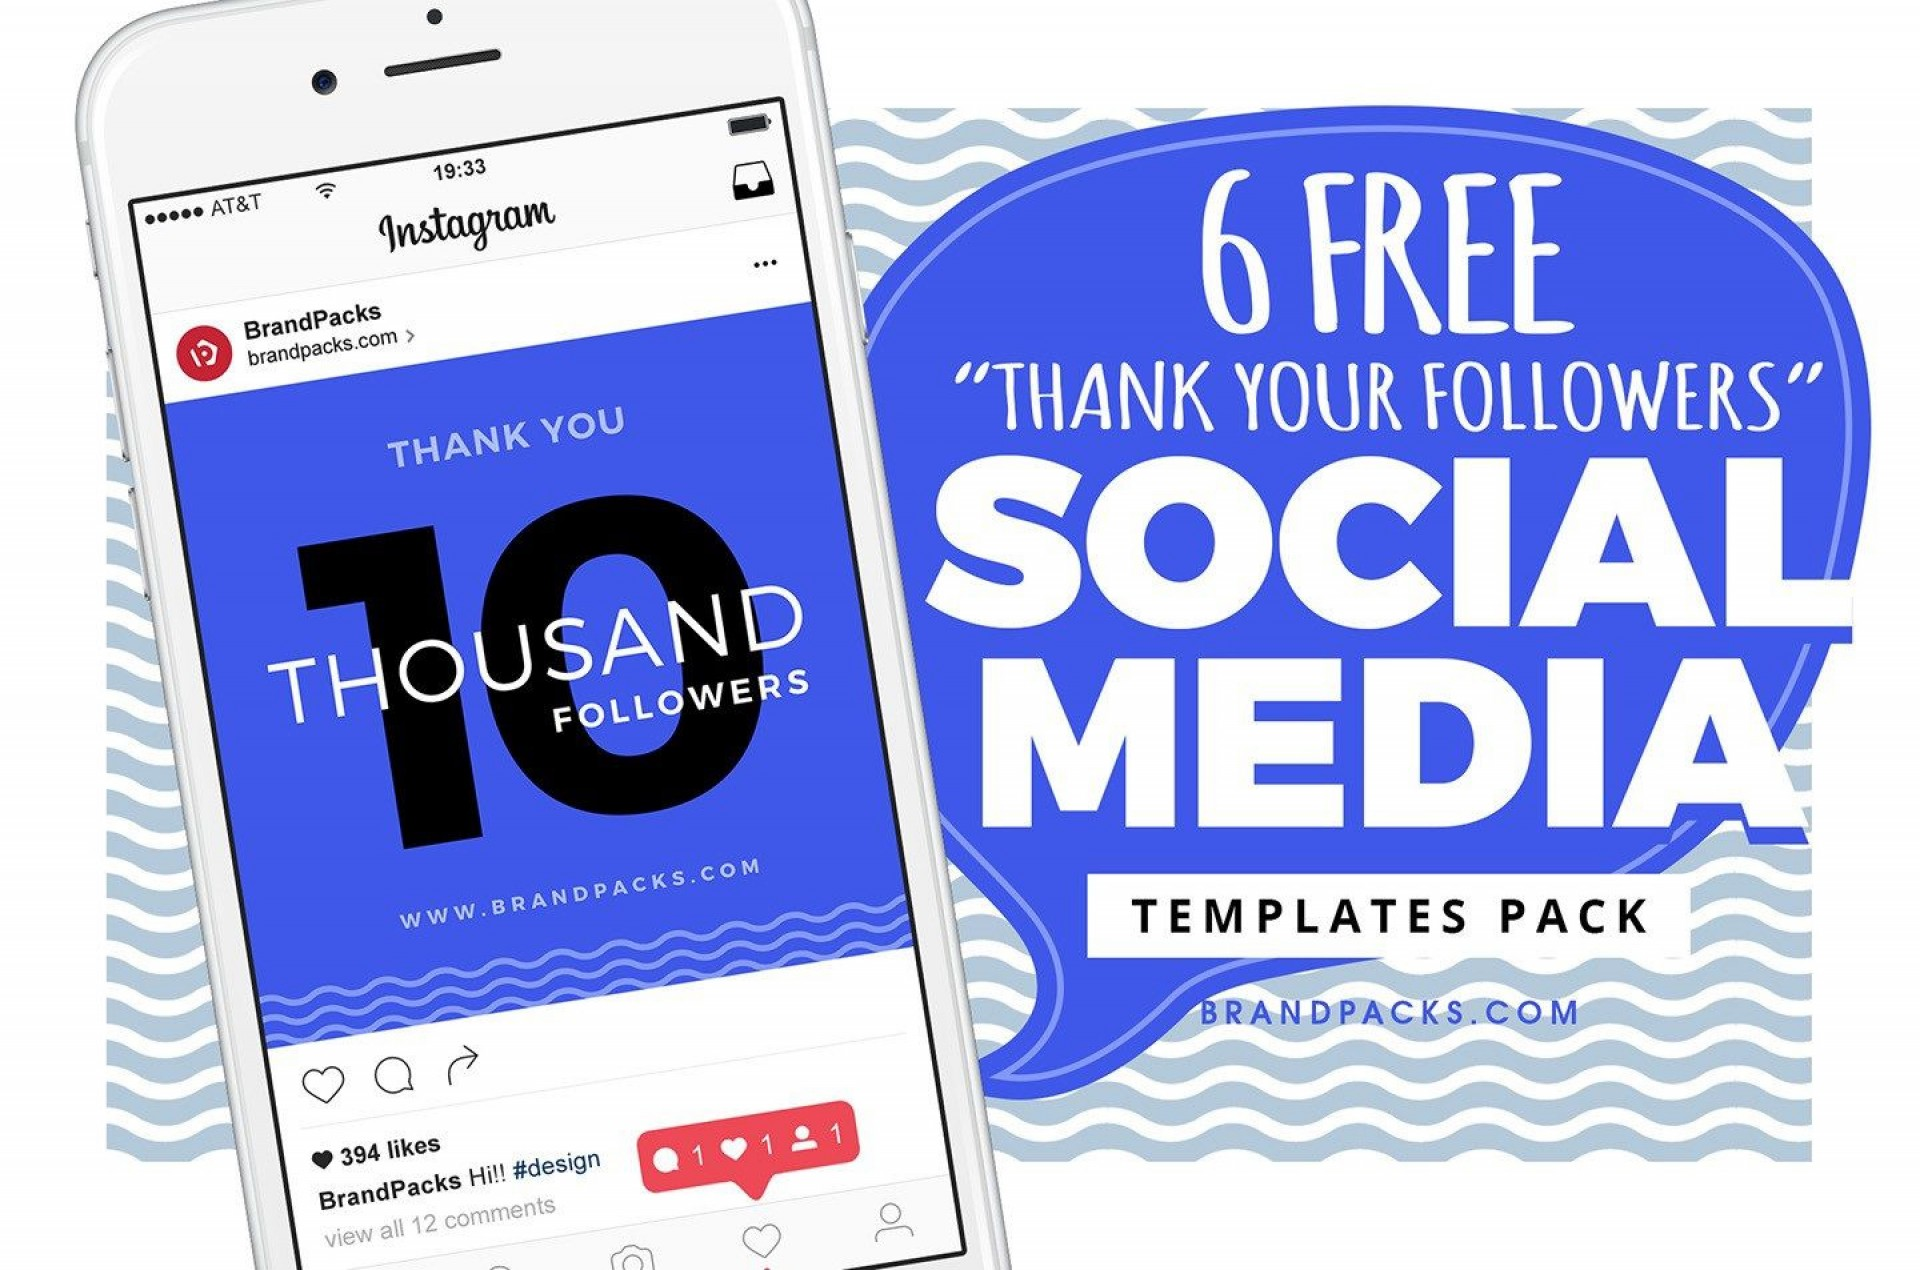 002 Unforgettable Free Social Media Template High Resolution  Templates Website Design Post Download For Powerpoint1920